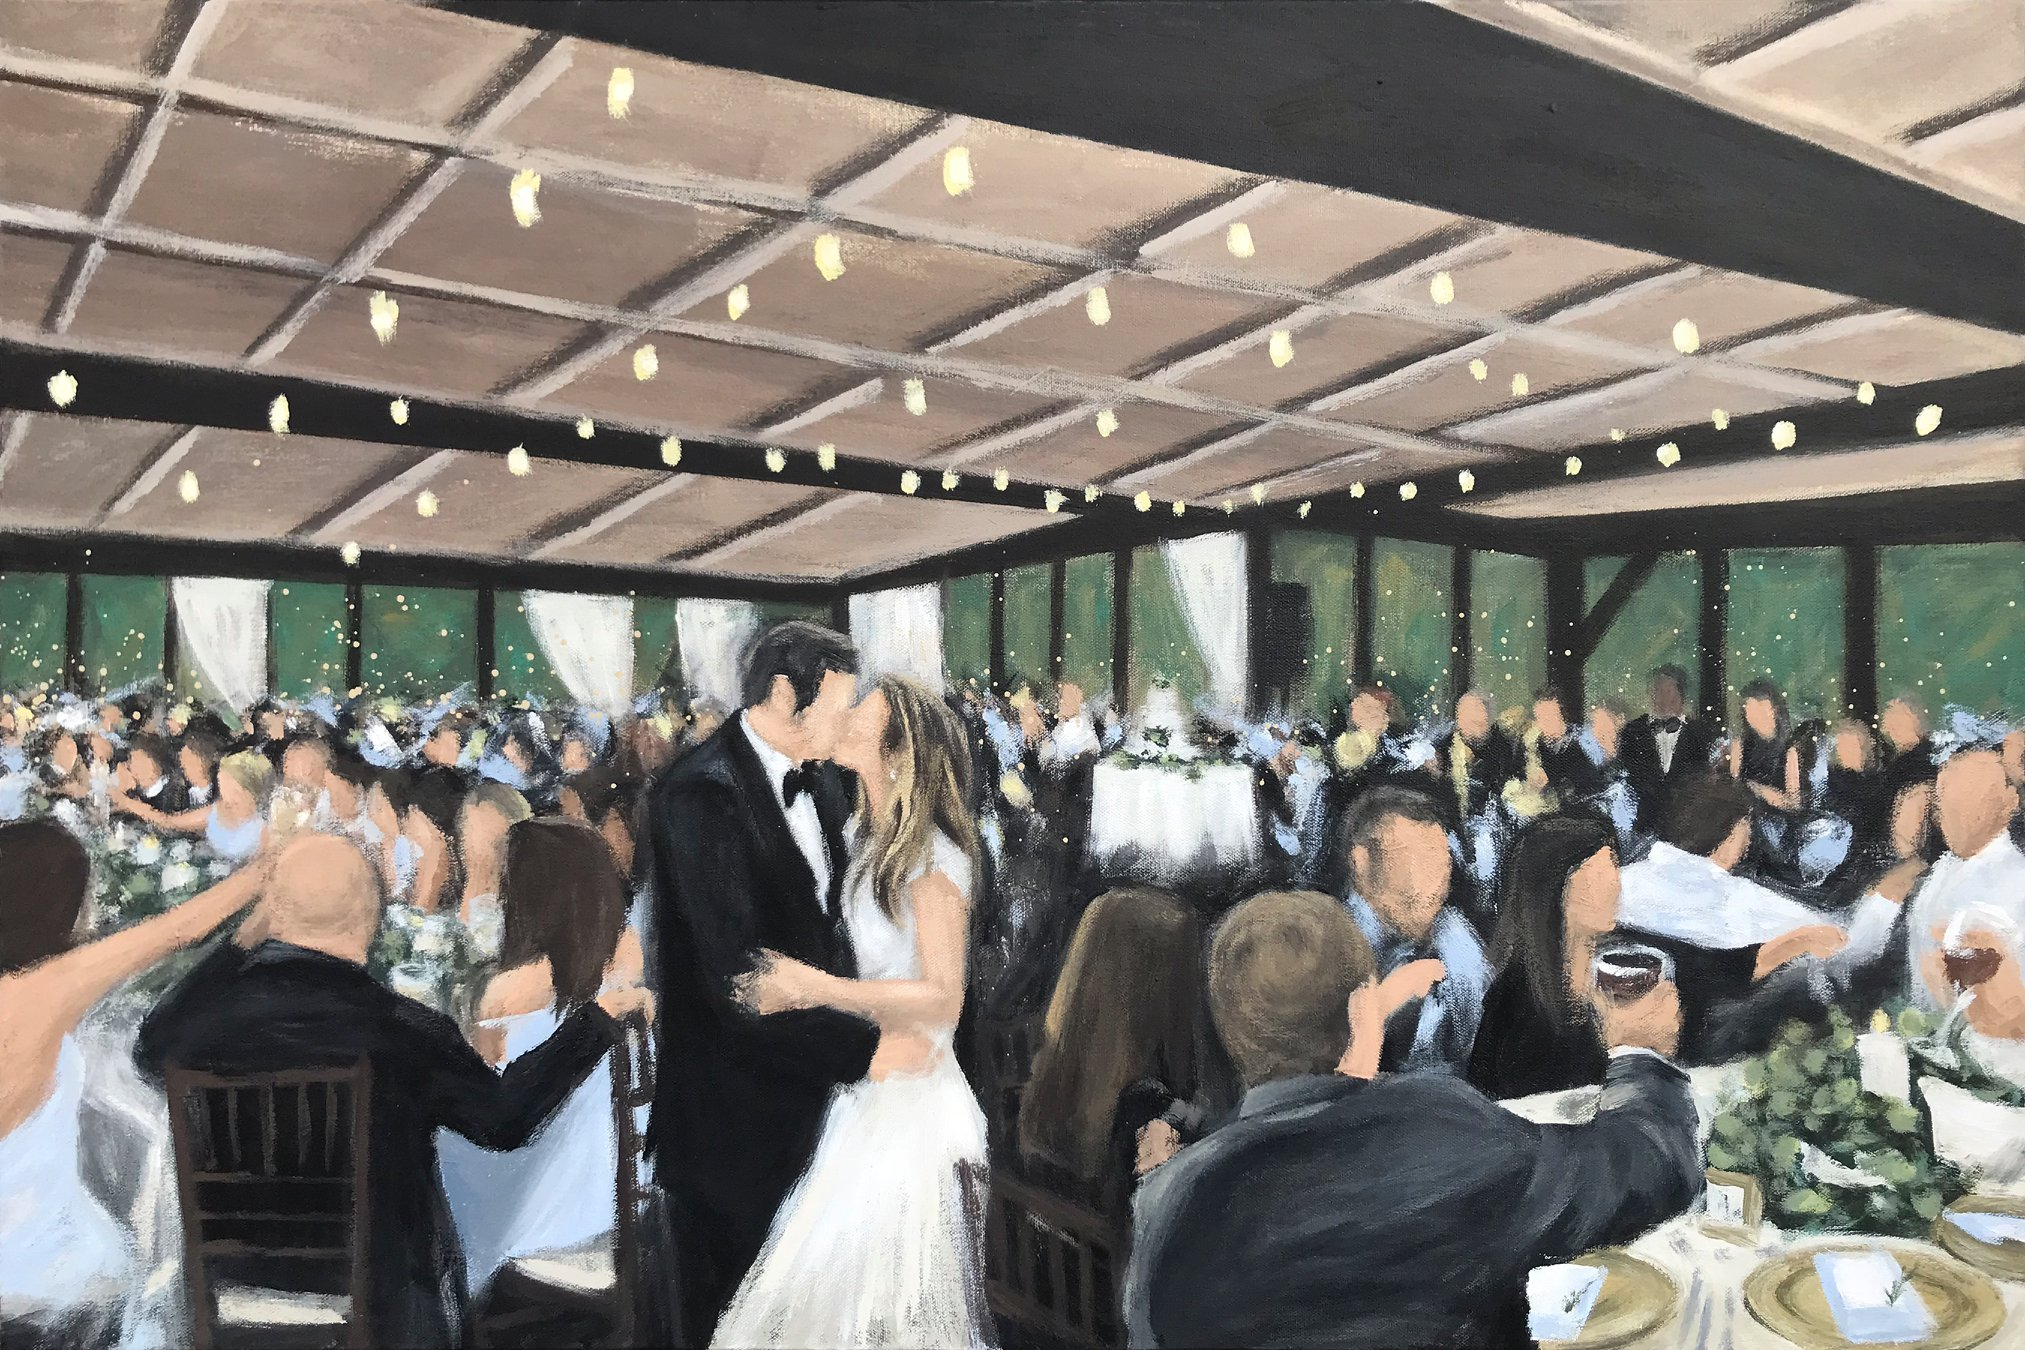 Live Wedding Painting // by Cleveland Event Painter Jacqueline DelBrocco // The Club at Hillbrook  // Chagrin Falls,OH //24x36in acrylic on canvas // Source photo cred for bride and groom portrait: Emily Millay Photography